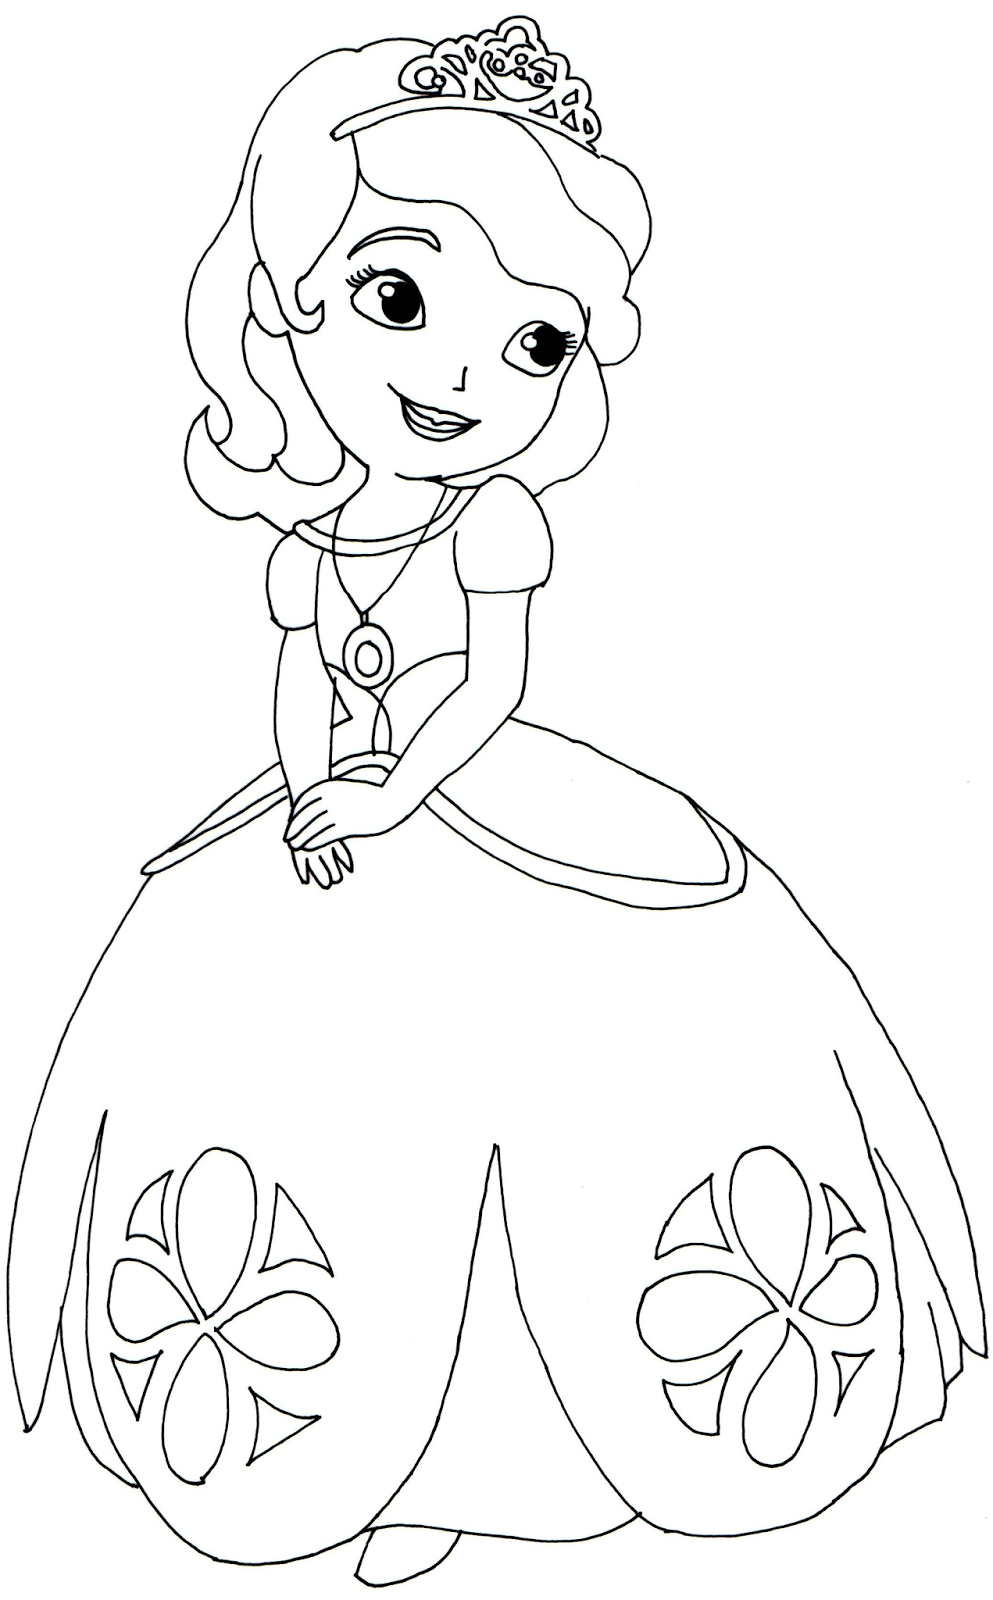 Sofia The First Coloring Pages To Print Princess Sofia Sheets Printable